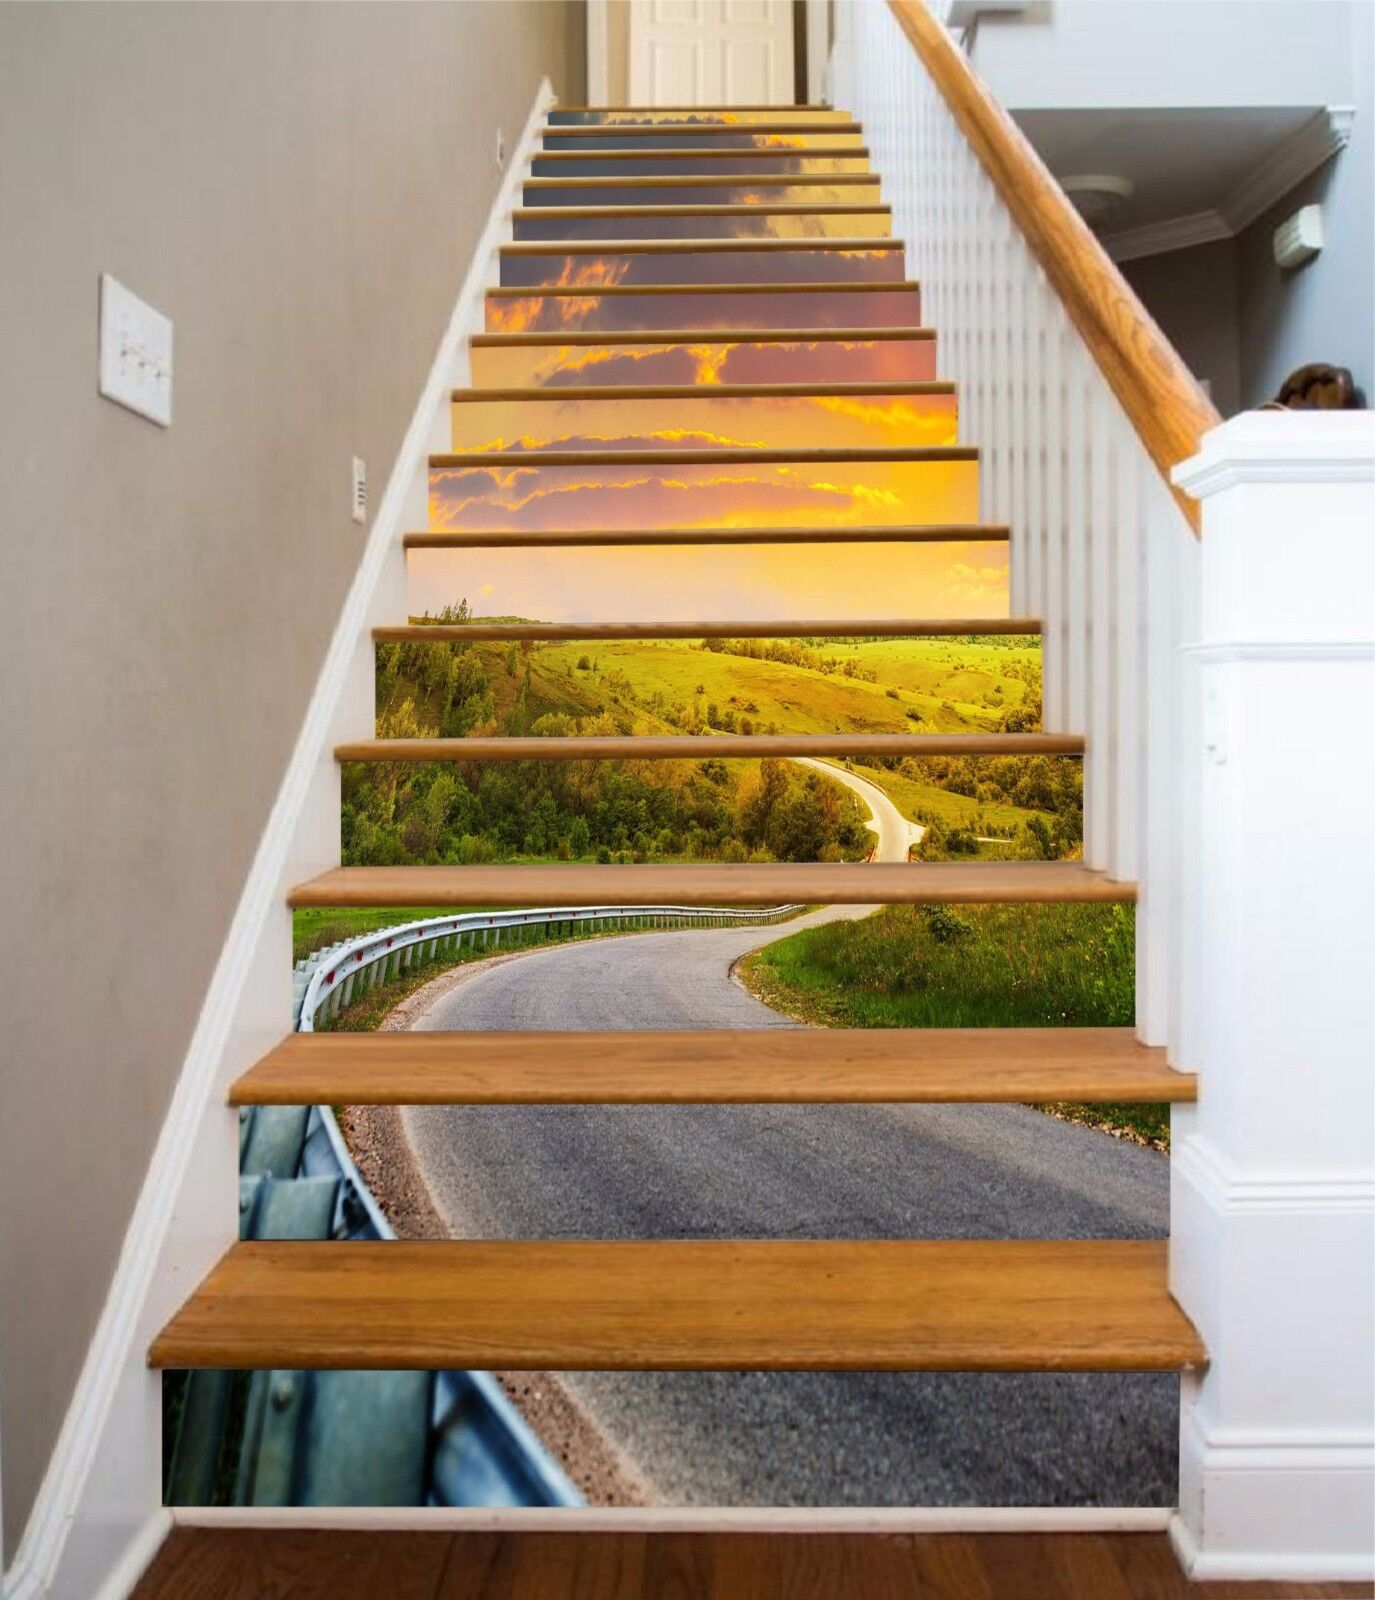 3D Road Scenery 14 Stairs Risers Decoration Photo Mural Vinyl Decal WandPapier US